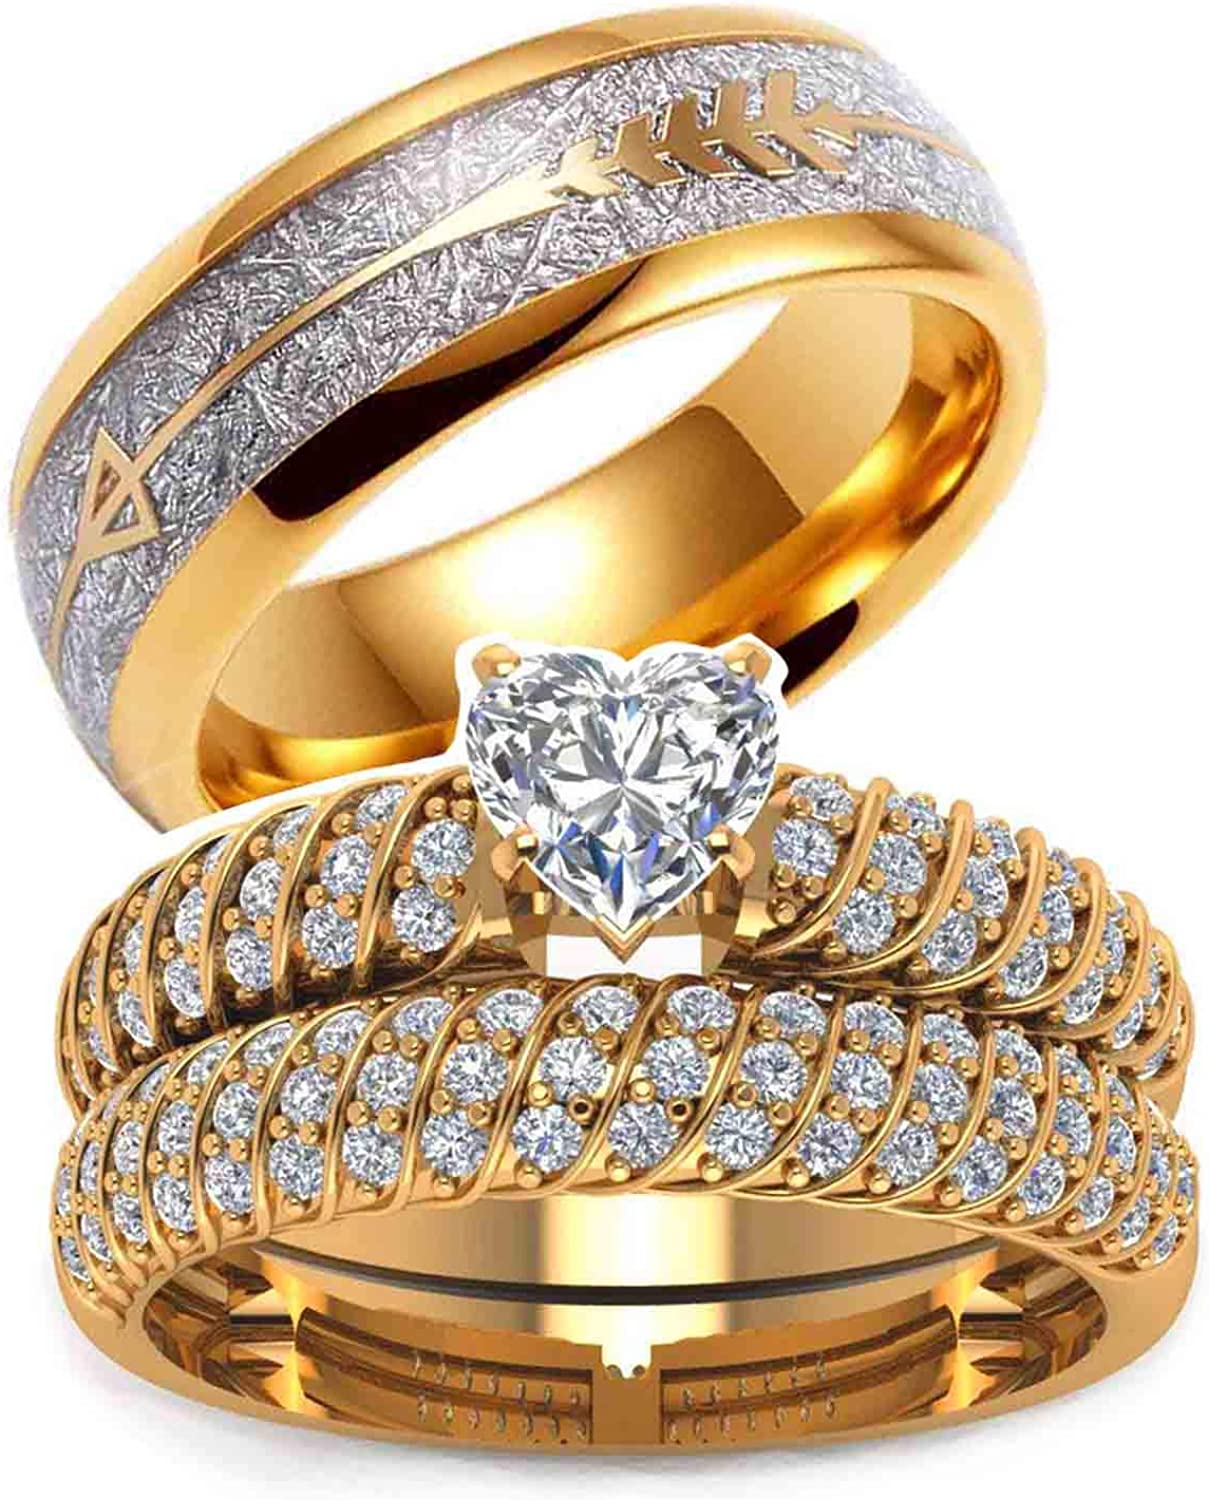 Two Rings His 5 ☆ popular Hers Wedding Ring Sets Y Fort Worth Mall 10k Couples Women's